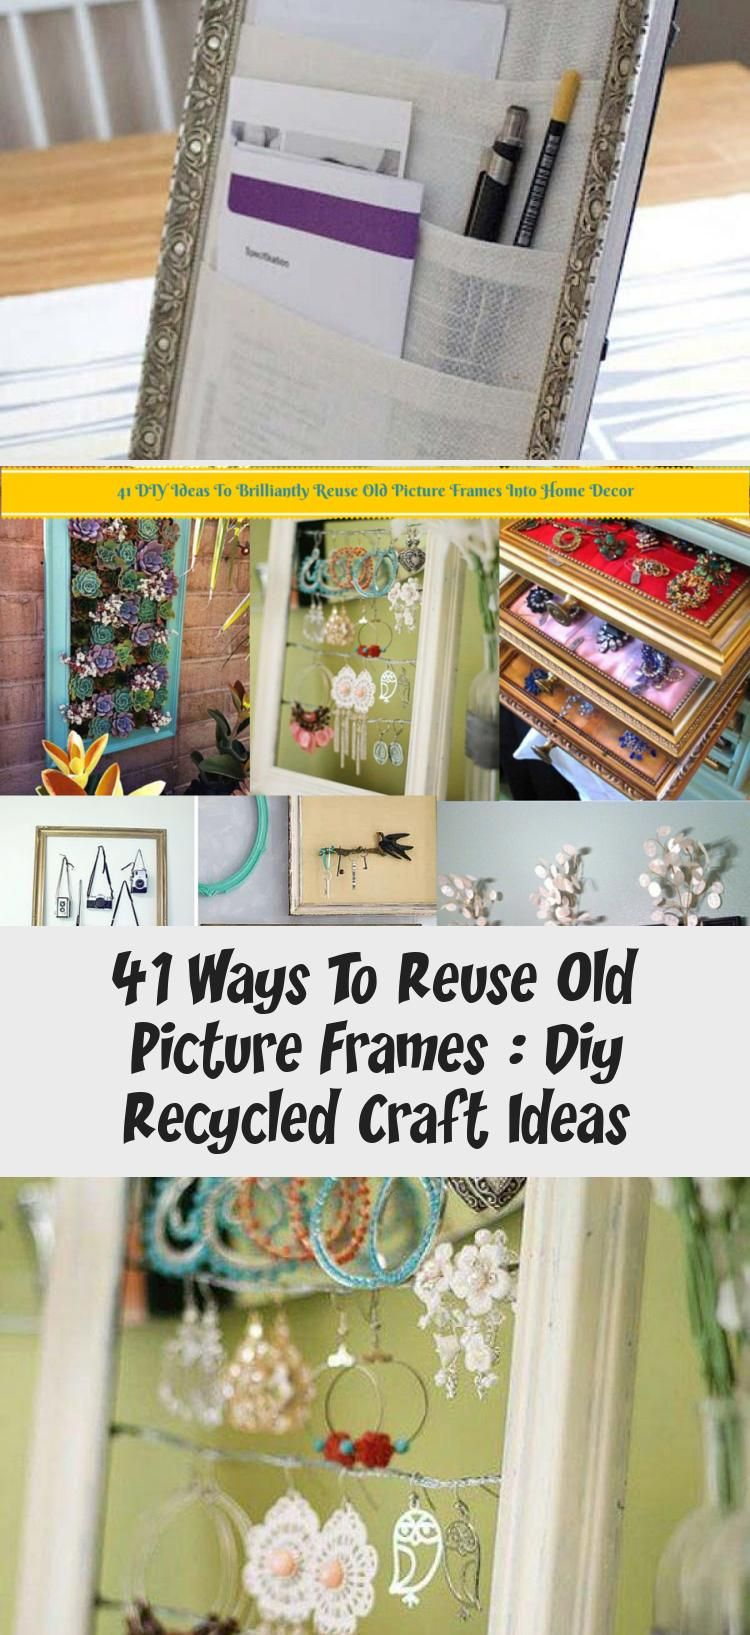 41 Ways To Reuse Old Picture Frames : Diy Recycled Craft